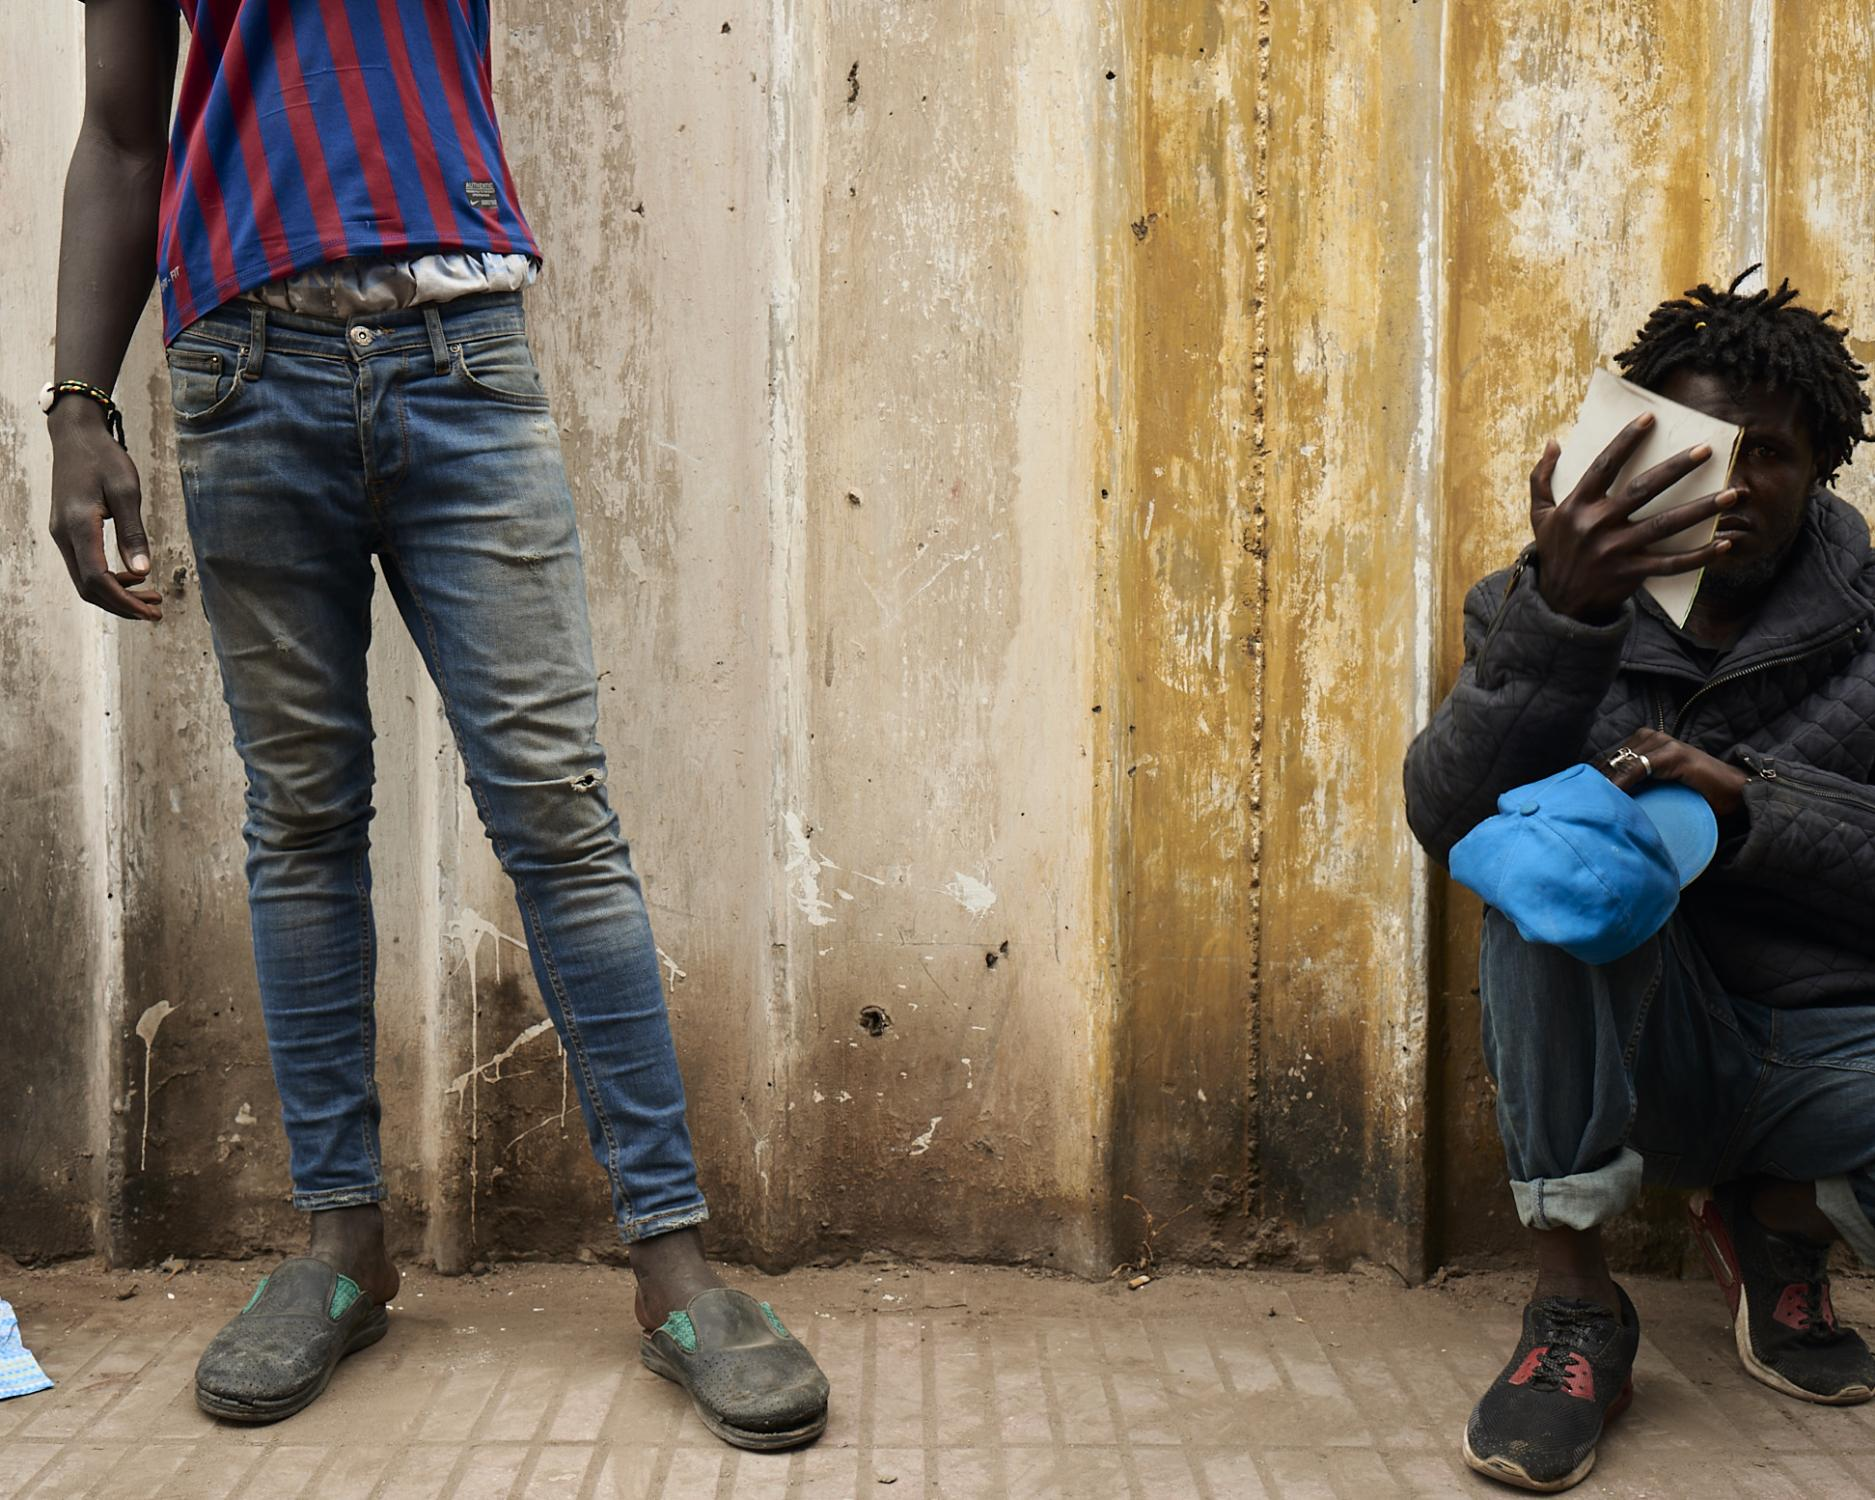 Underage boys, mostly from de Guinea, Ghana, Niger, or Ivory Coast, lives grouped as the only protection against criminal groups or even the police, that comes in raids and sends them back to farther border points within the country. Casablanca, Morocco, 2019.